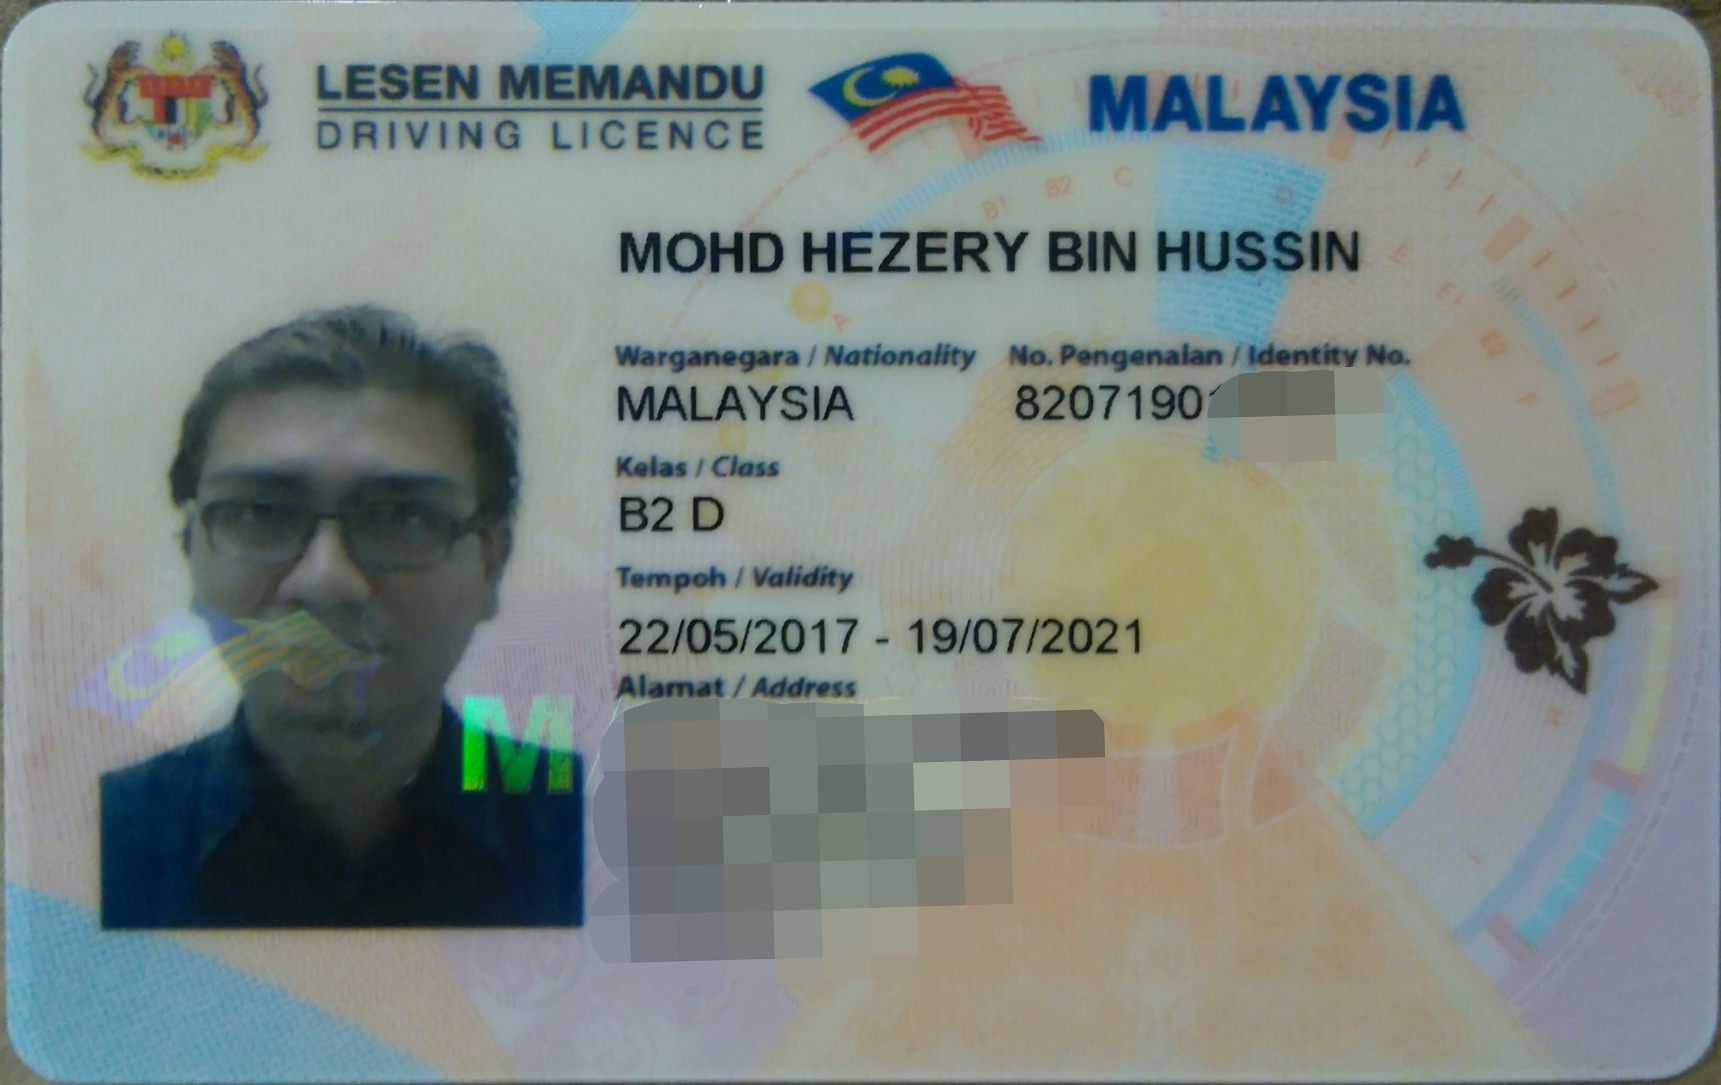 Renewing Your Photo Driving Licence Every 10 Years How much is it to renew photo driving licence